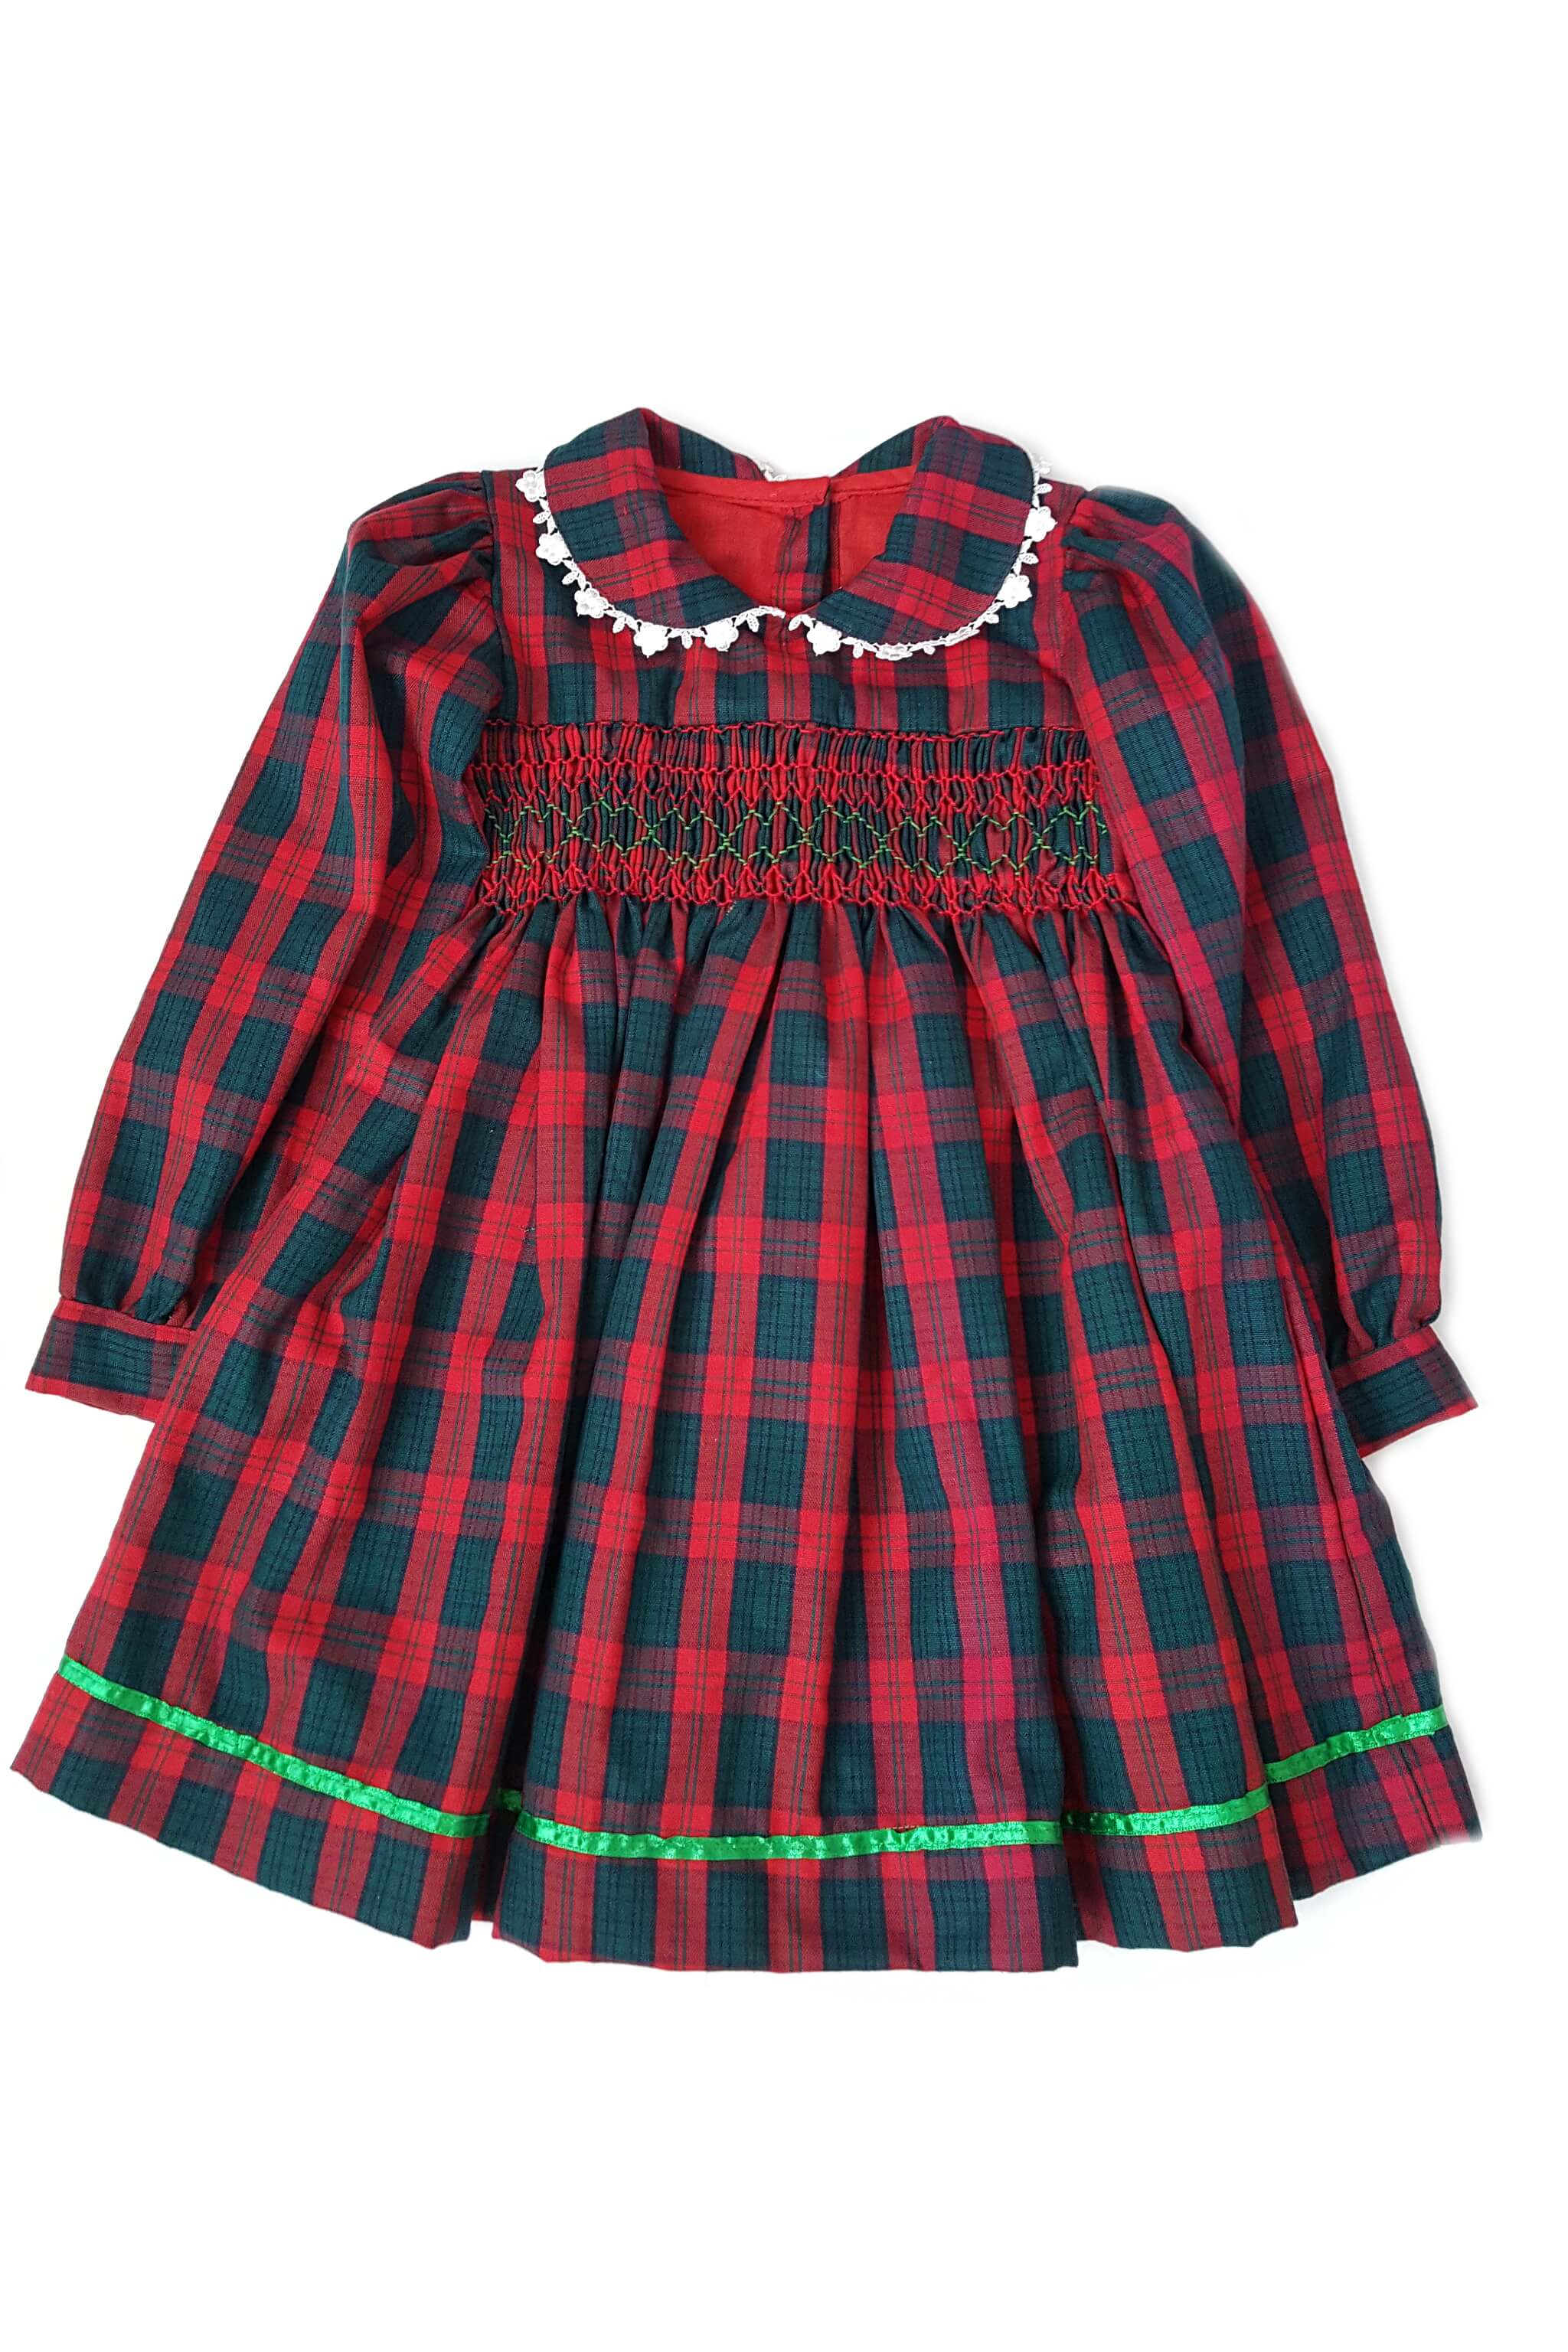 Red and green plaid smocked dress with intricate white lace details, green satin trim and long sleeves for 2-3 year old girls